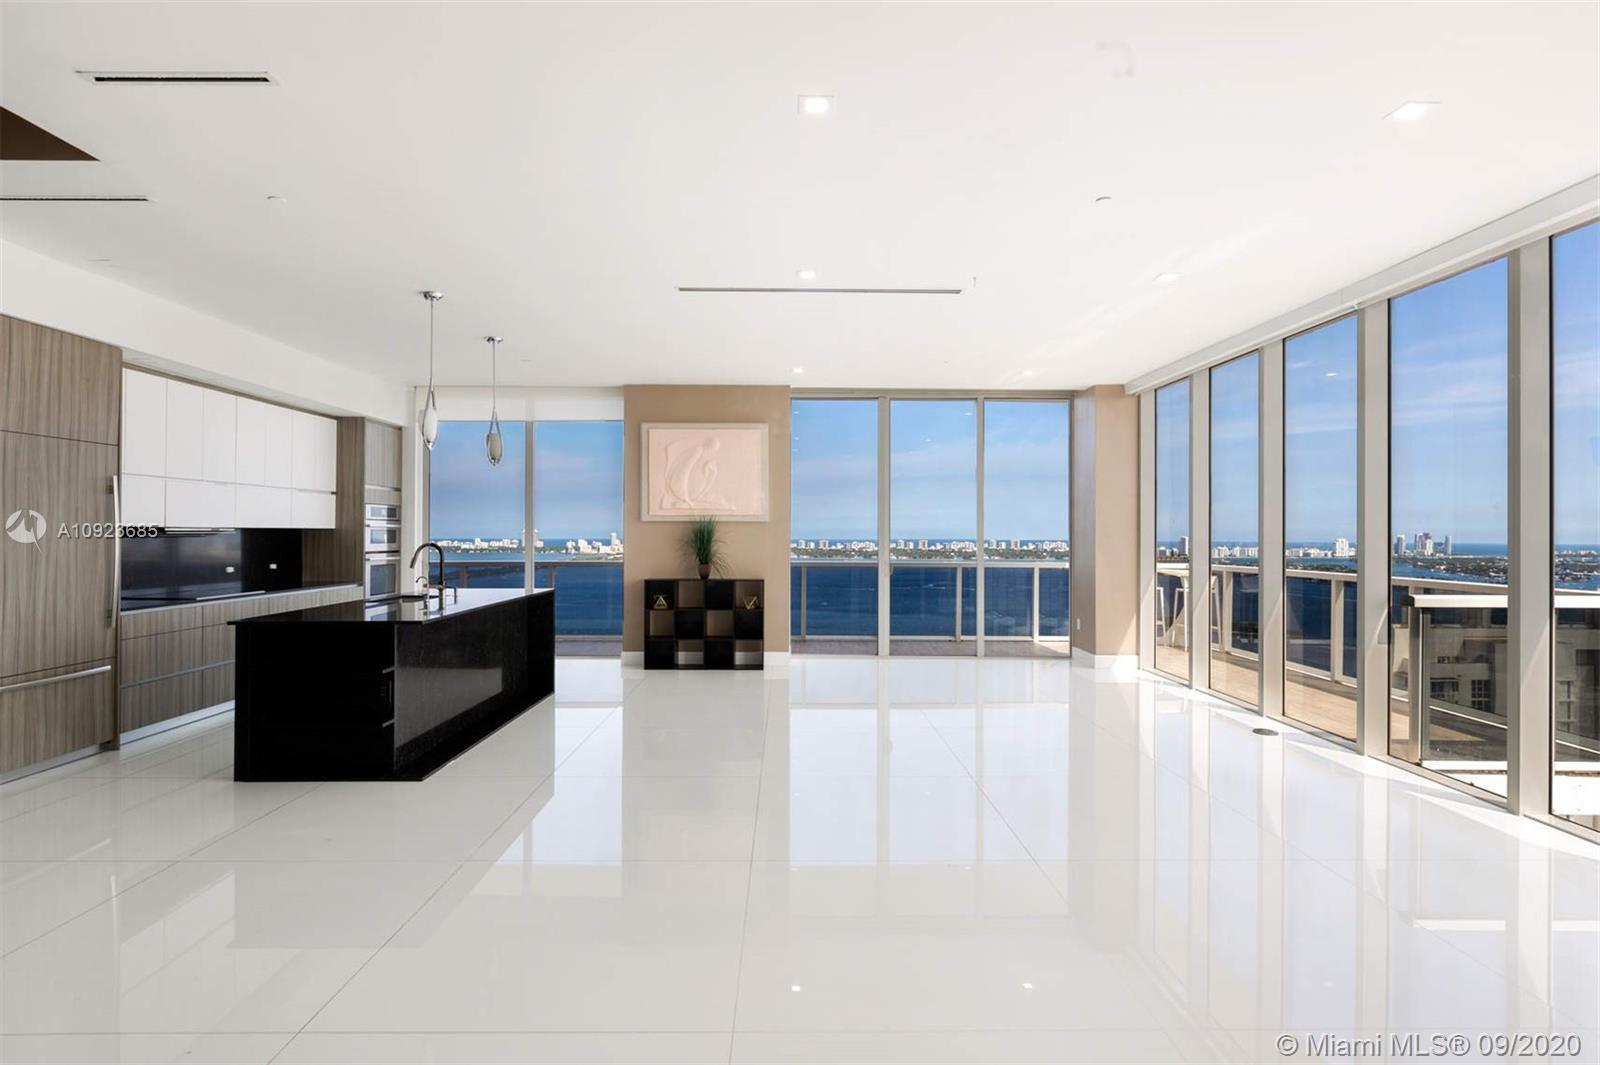 DUPLEX PENTHOUSE ON BISCAYNE BAY Live high-in-the-sky on the 36th floor at The Bay House. Currently